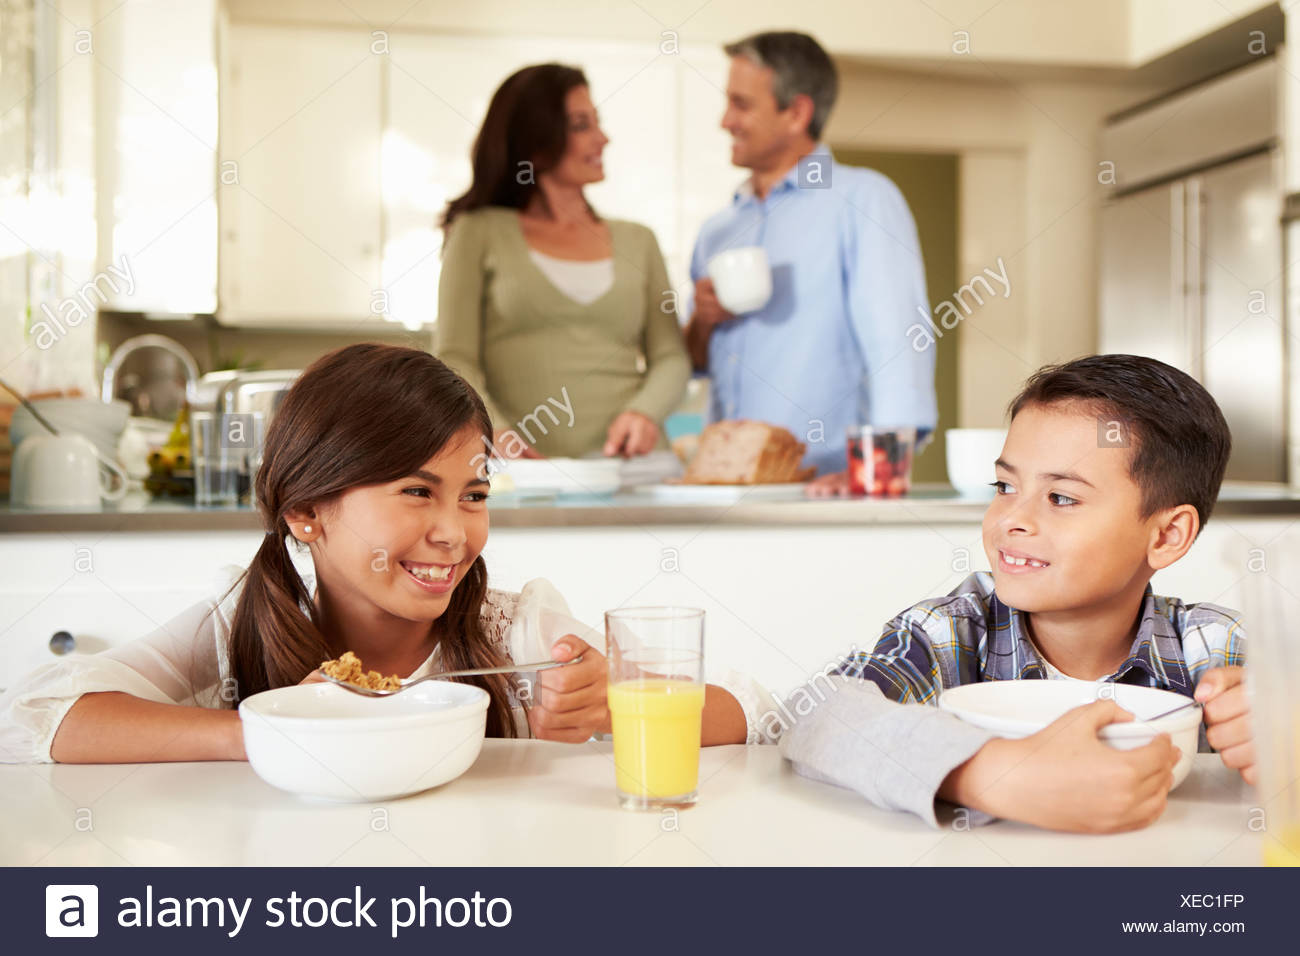 Hispanic Family Eating Breakfast At Home Together - Stock Image